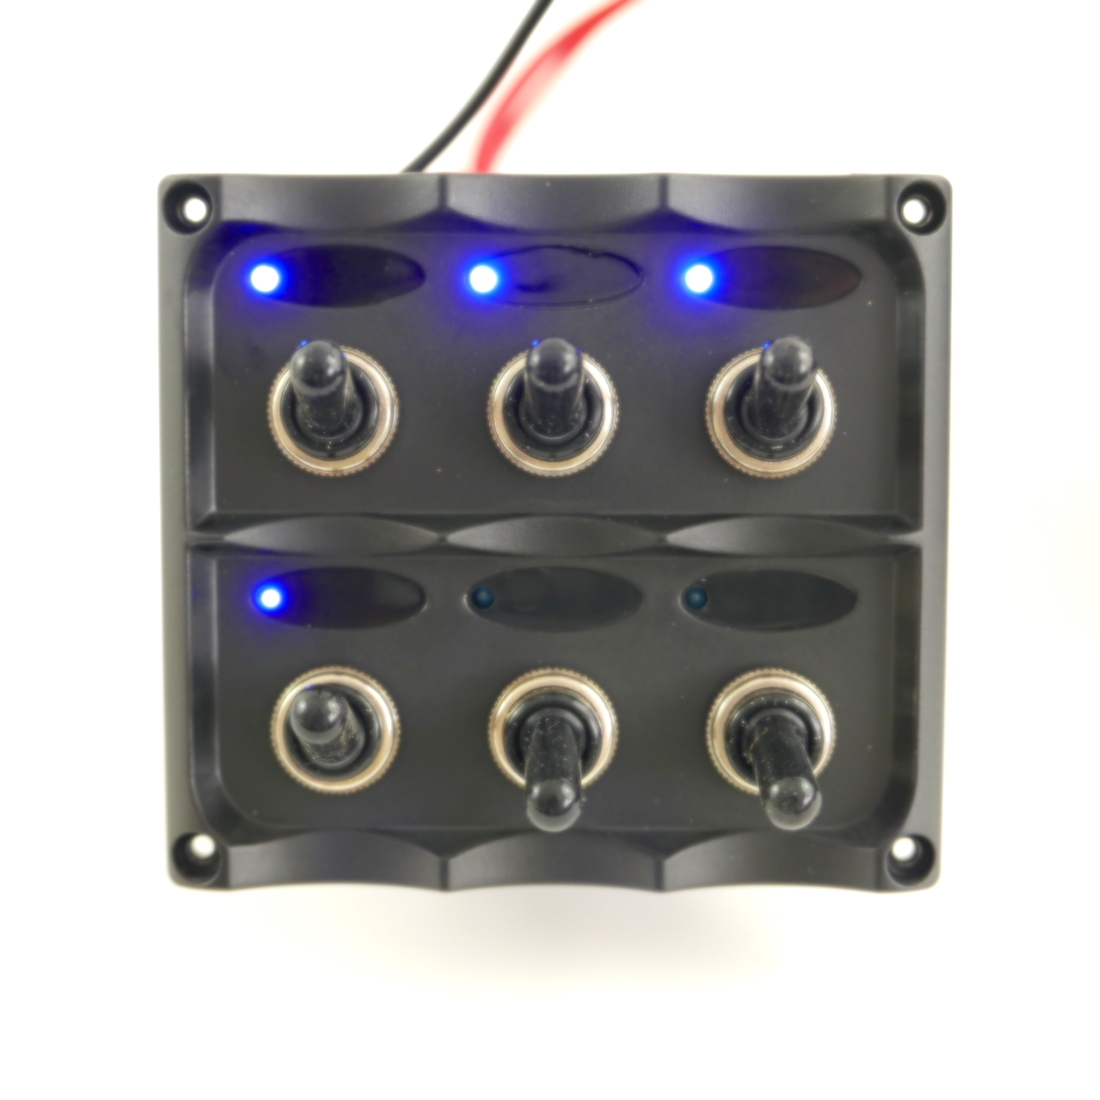 12v Switch Panel With Toggle Switch  5 Gang   Power Socket